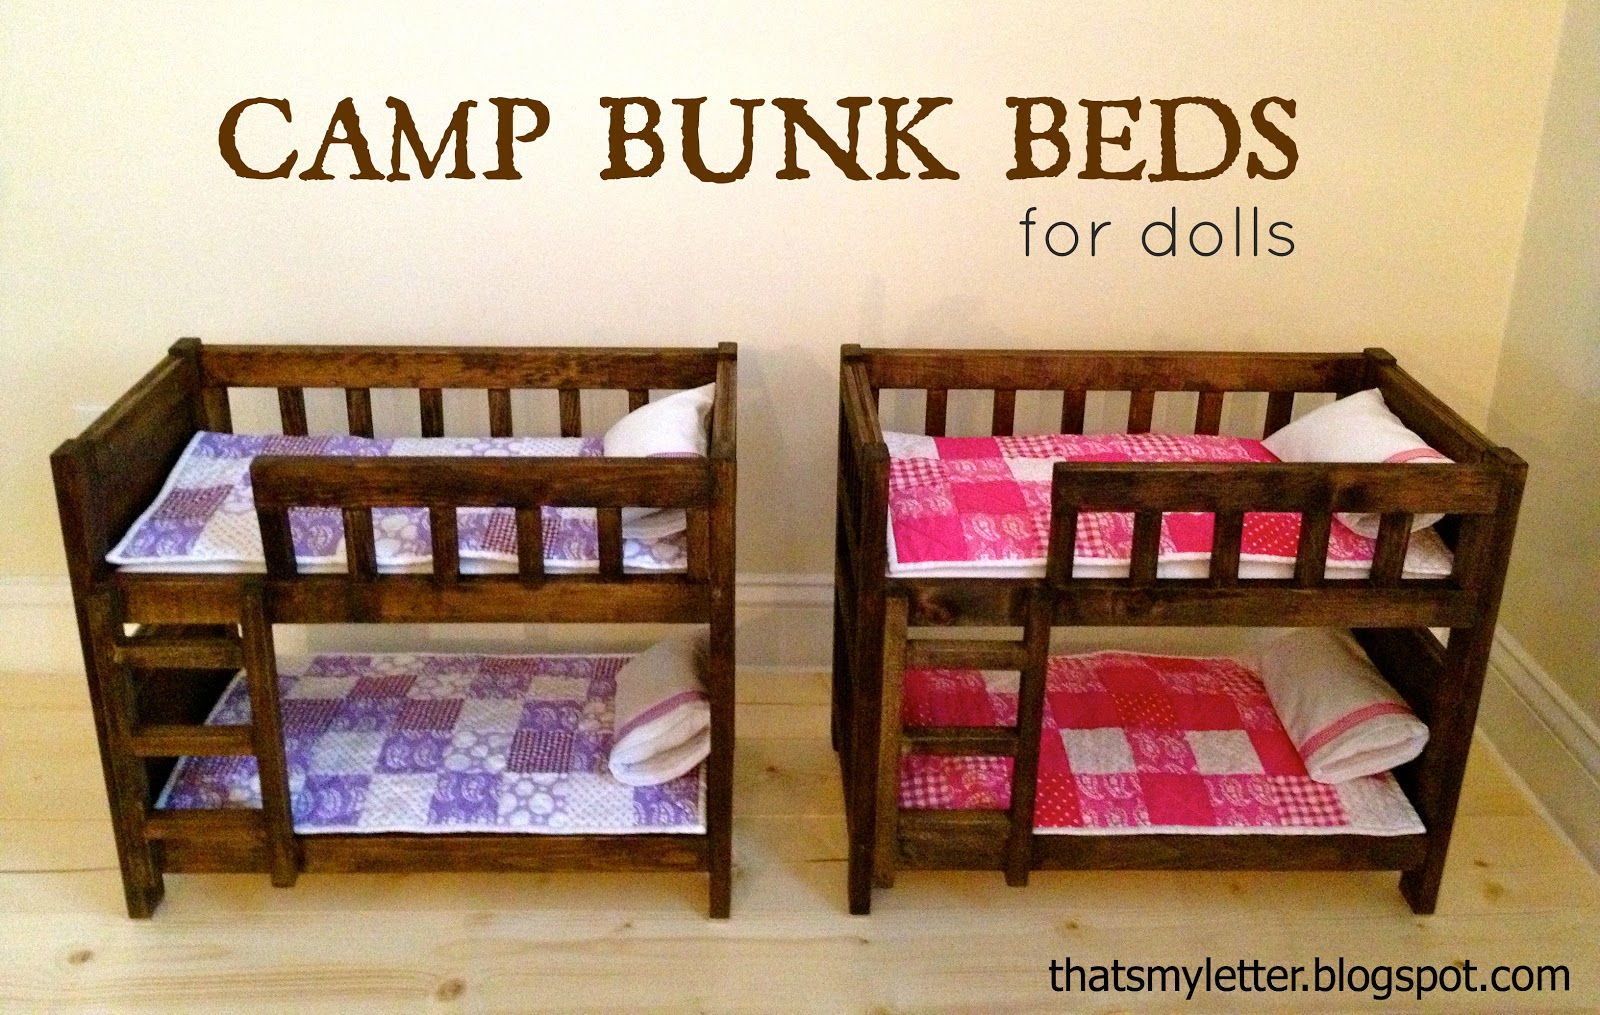 Diy Blog Möbel Diy Doll Size Camp Bunk Beds Jaime Costiglio